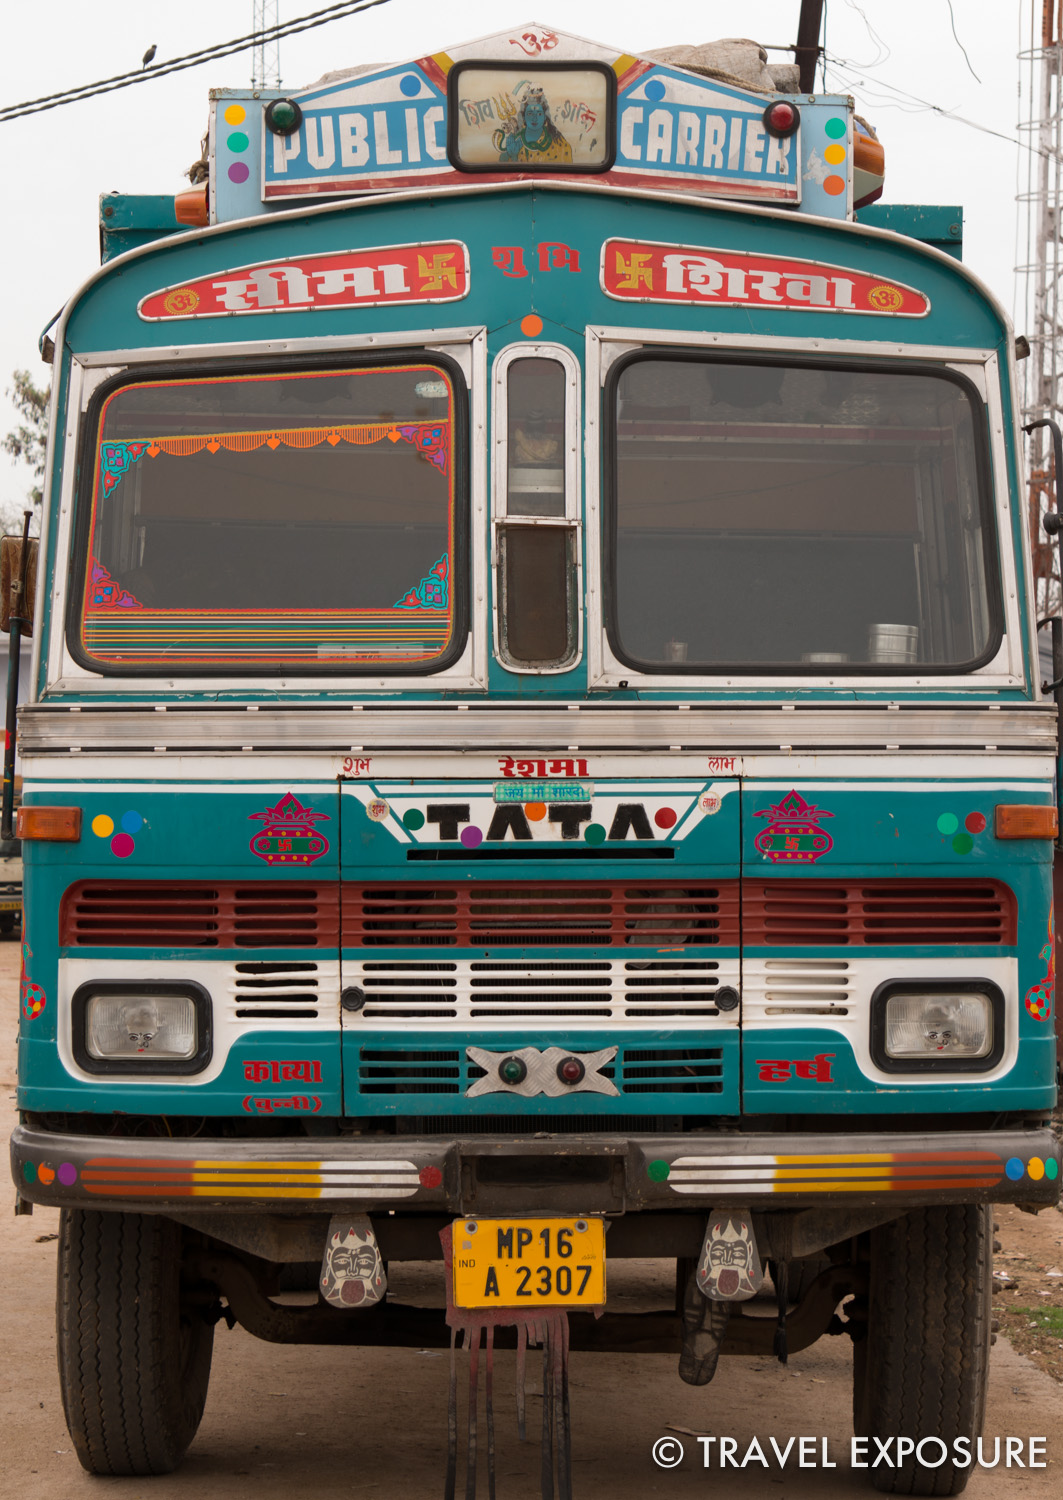 One of many of the colorfully decorated trucks in India